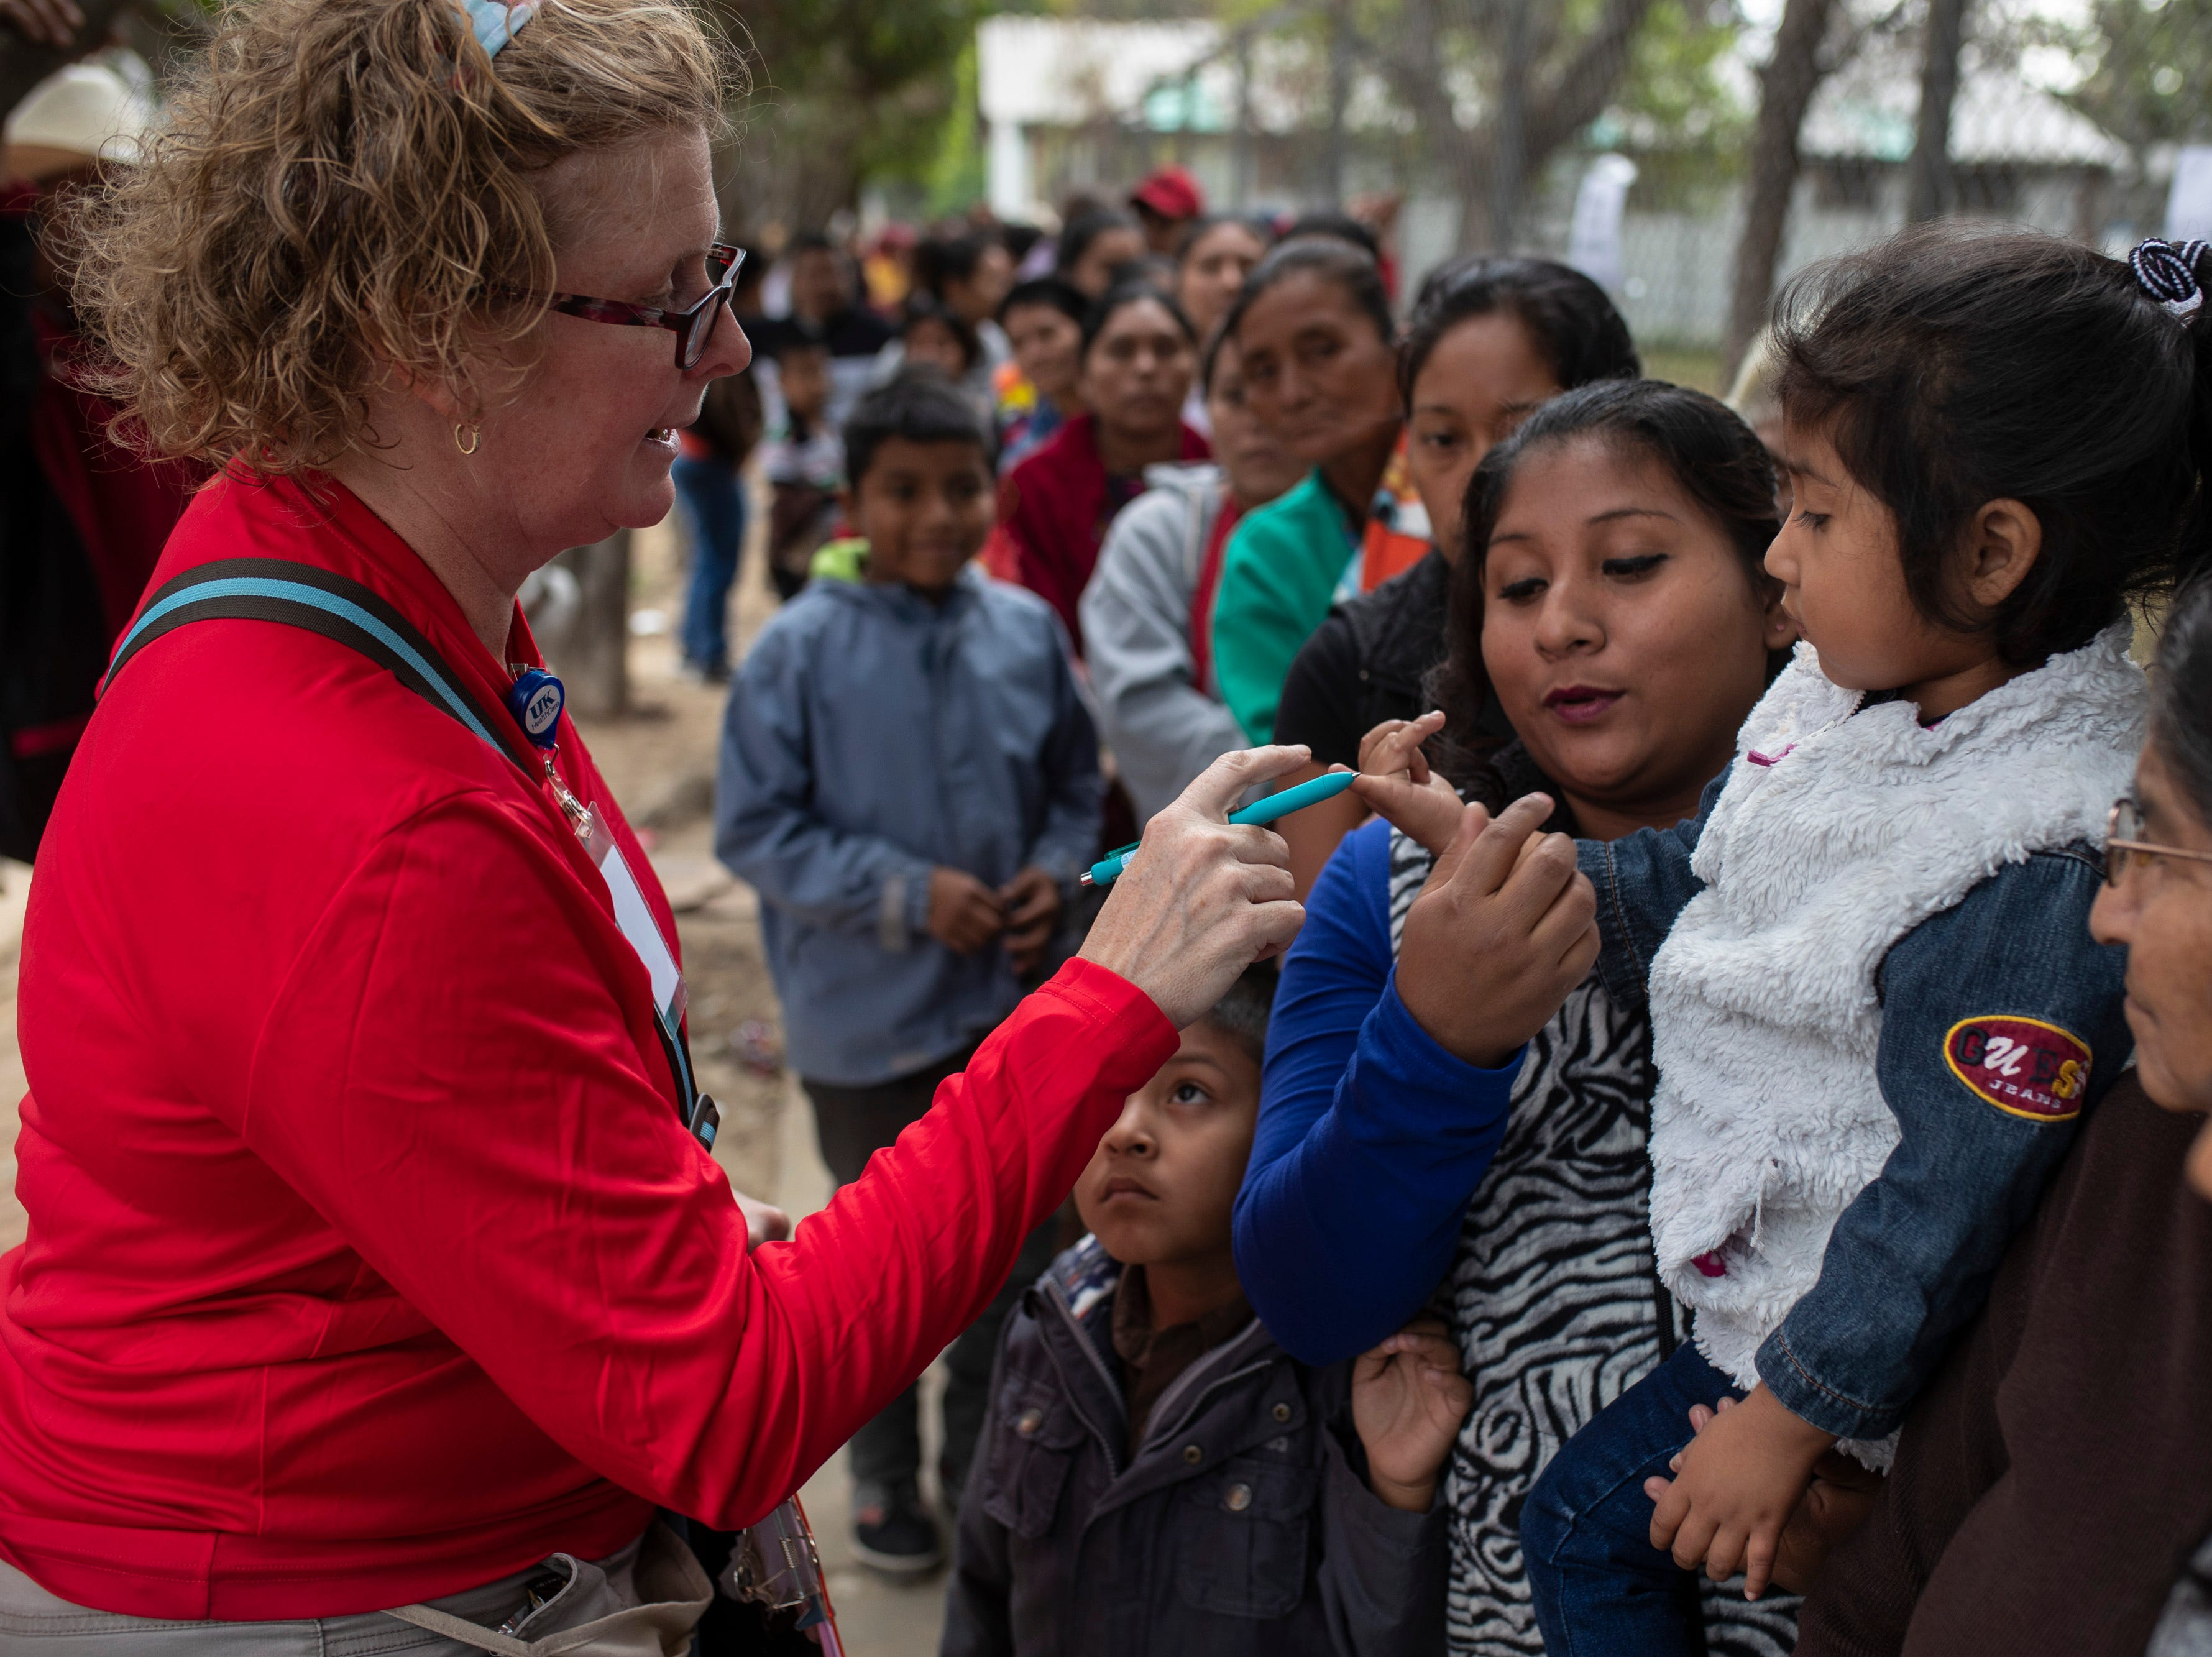 COTA board president Jennifer Christmann makes her way down the long line of hopeful patients outside the Hospital Nacional de Salamá on the first day of the medical mission. Christmann aims to help move those most in need of surgery up in the line to ensure as many are helped as possible. Jan. 20, 2019